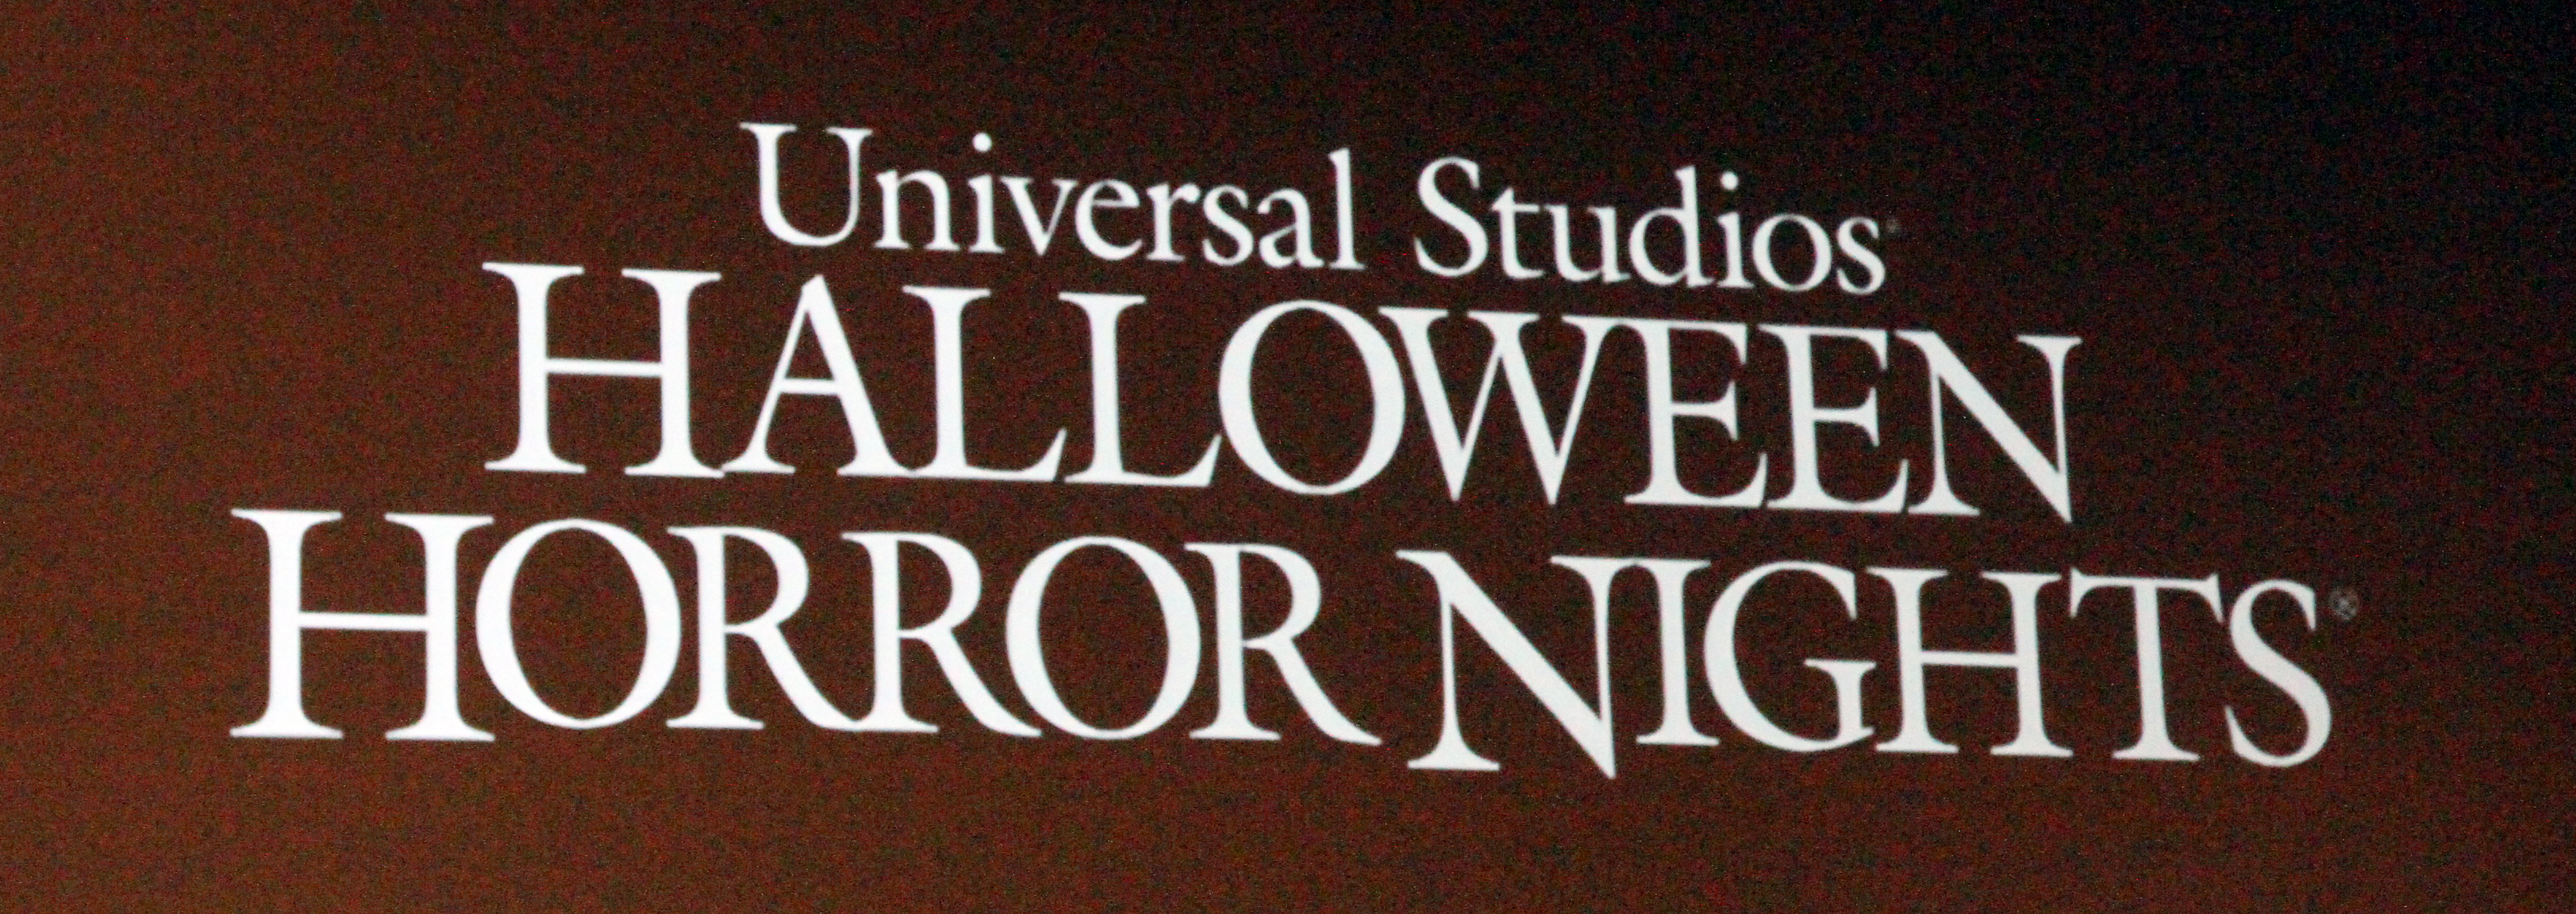 john murdy is the creative director for universal studios hollywoods halloween horror nights hes been doing it for quite